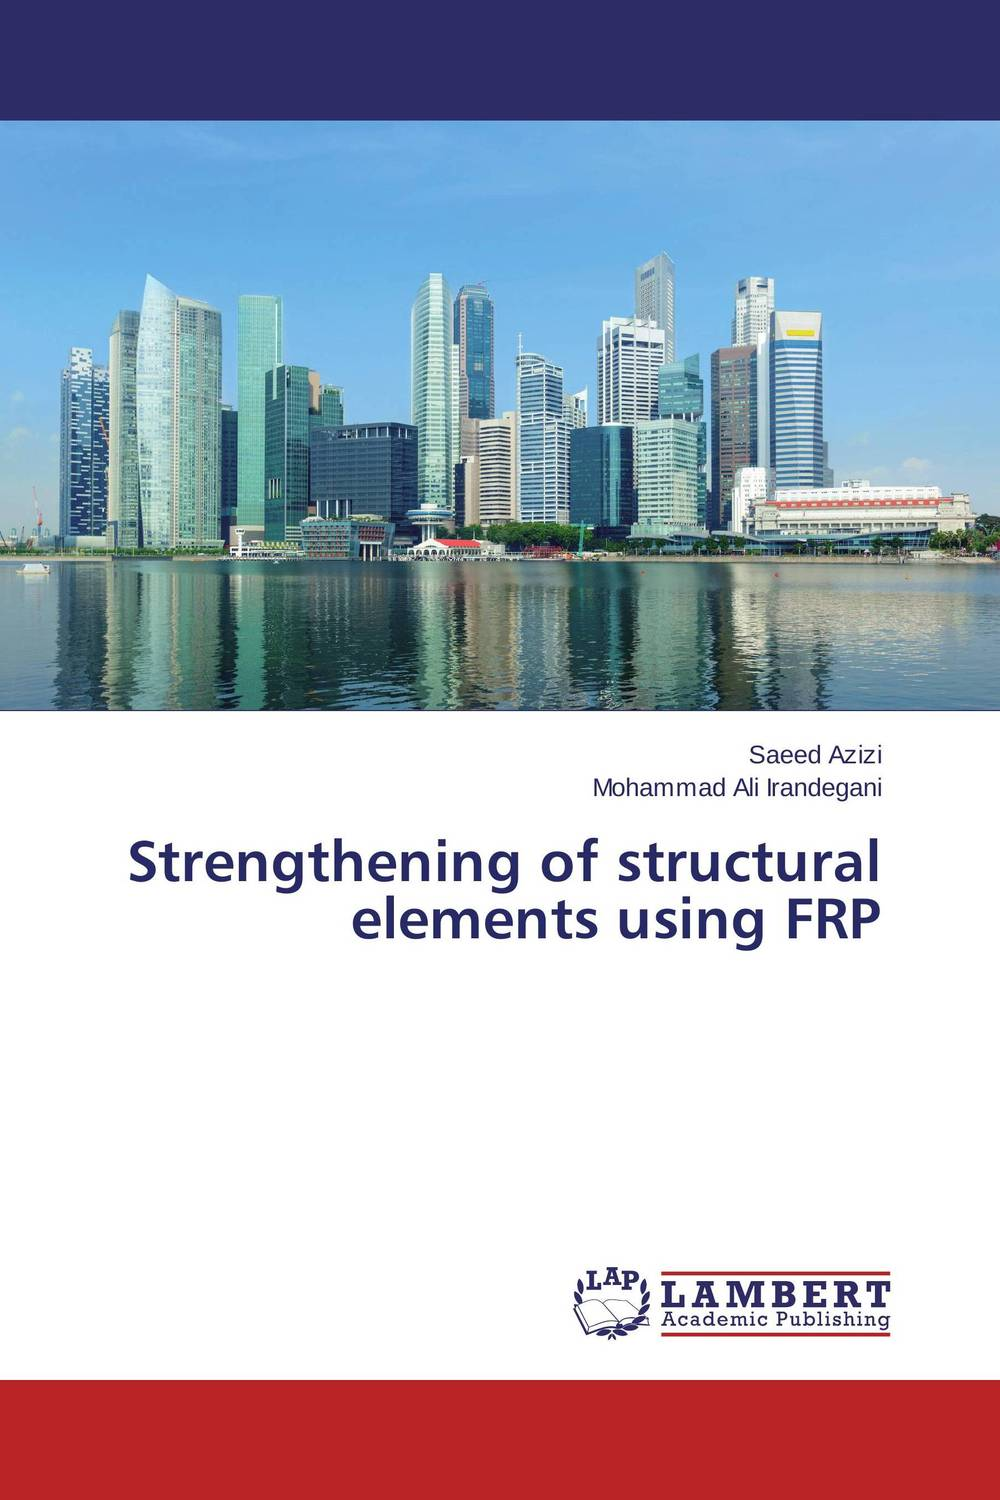 Strengthening of structural elements using FRP